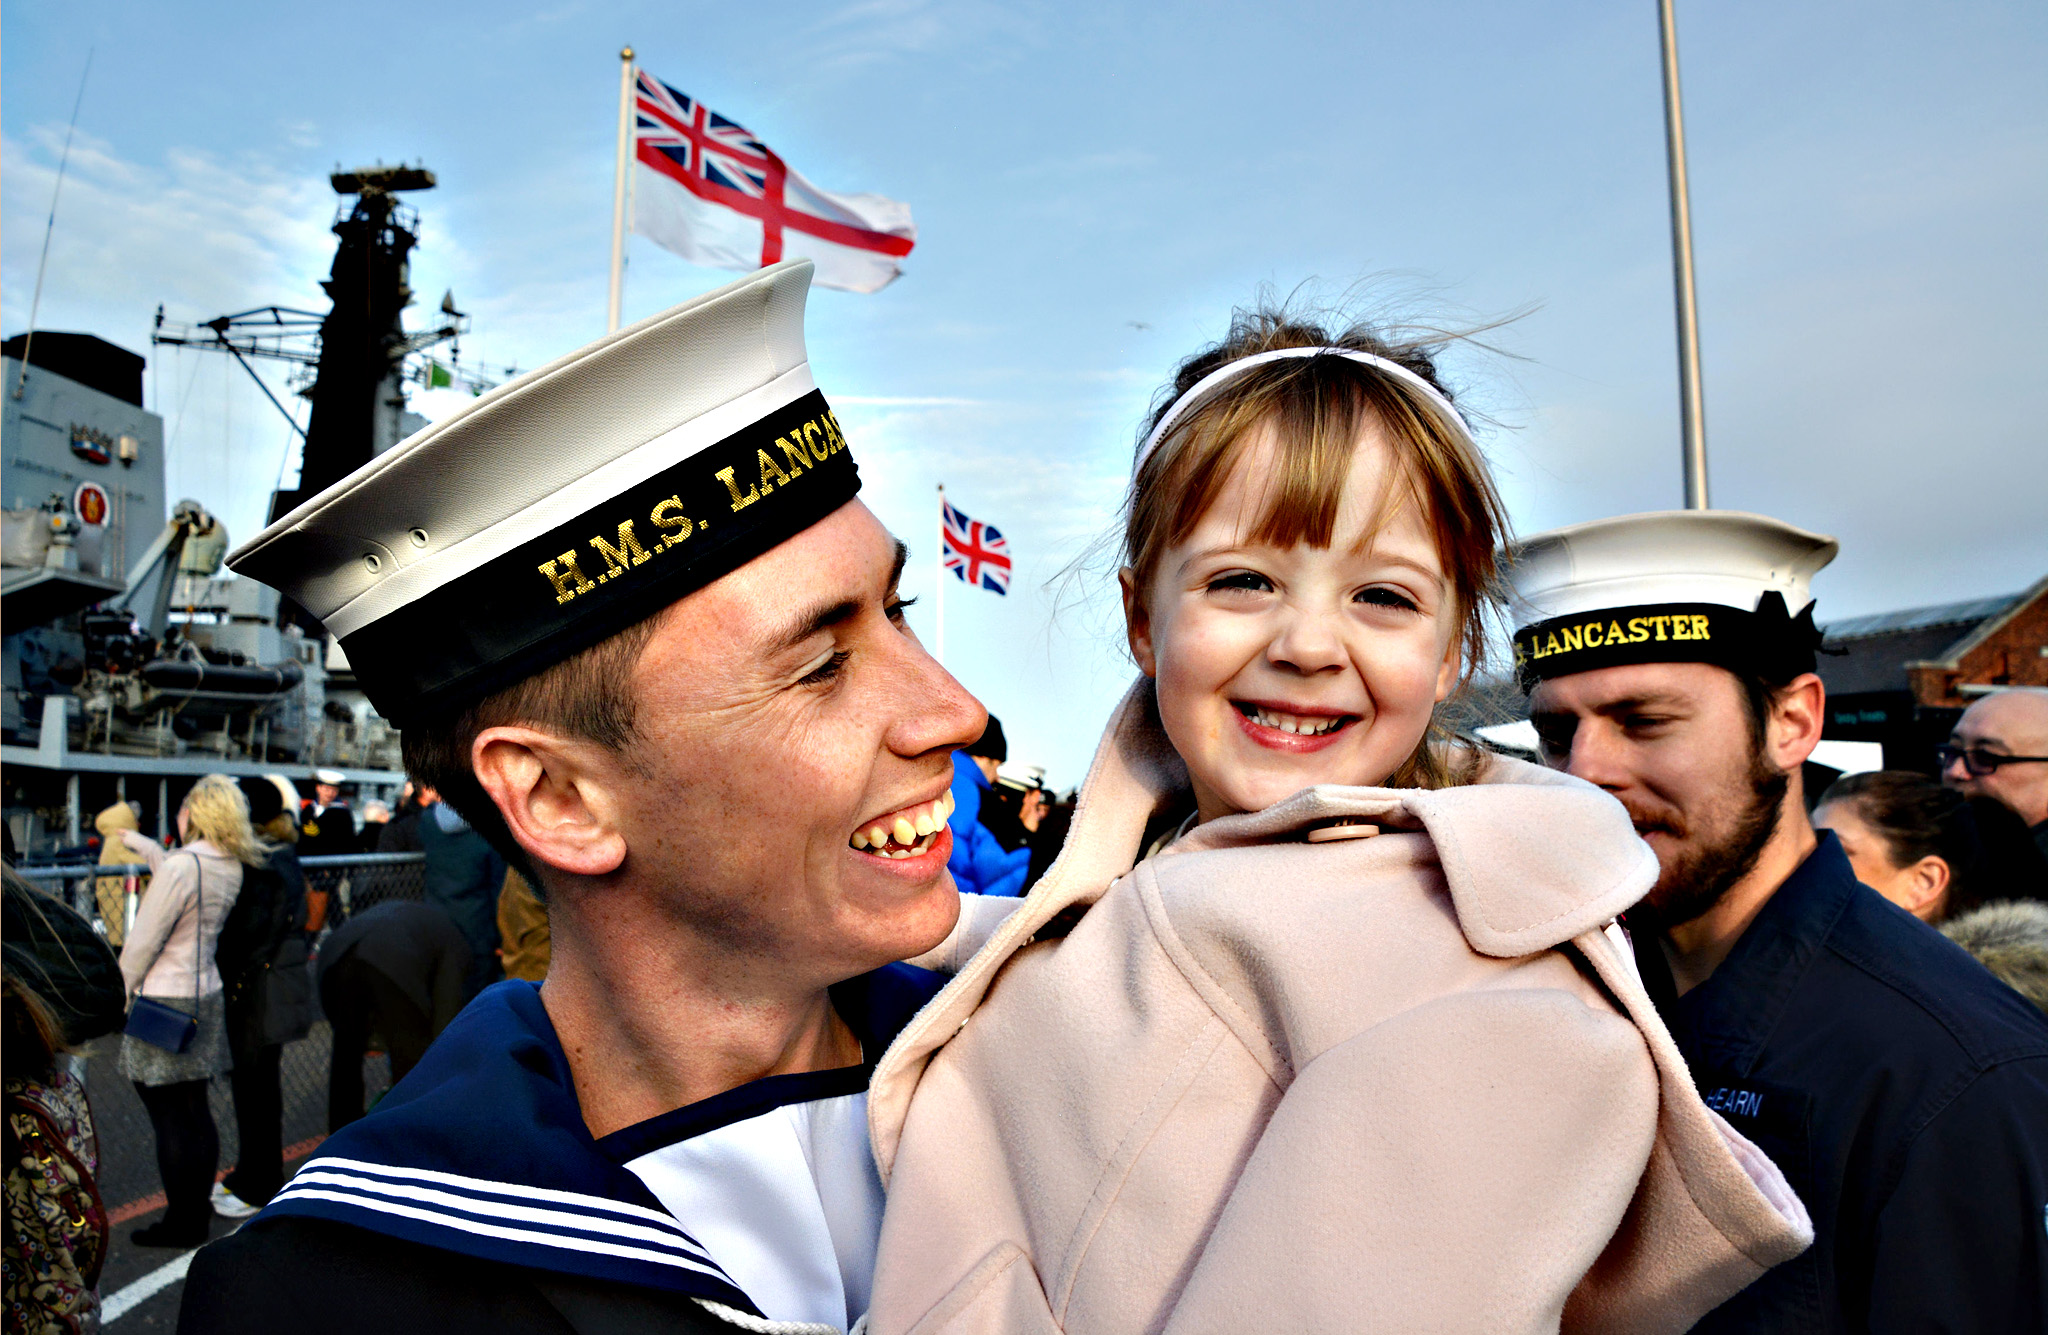 Leading Airman Sam Ashman, 29, from Yeovil, Somerset, with daughter Lexi, as he returns aboard HMS Lancaster to Portsmouth Naval Base after the Royal Navy Frigate completed a 35,000-mile voyage across four oceans. PRESS ASSOCIATION Photo. Picture date: Thursday December 17, 2015